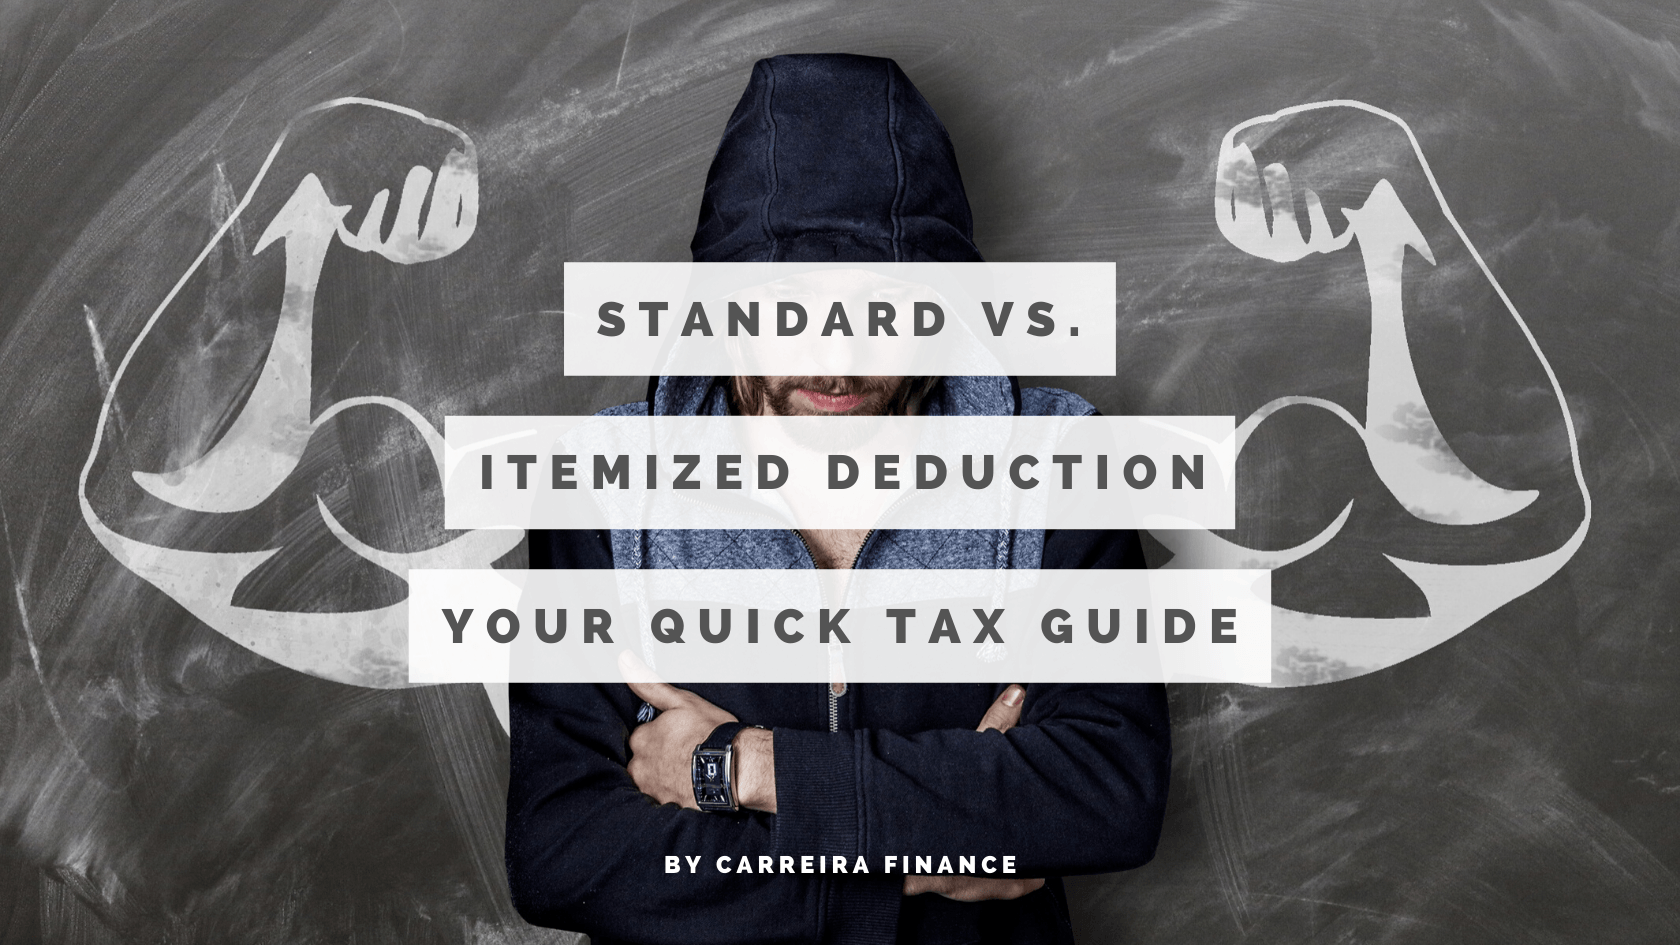 Standard vs. Itemized Deduction - Your Quick Tax Guide - Carreira Finance Coaching